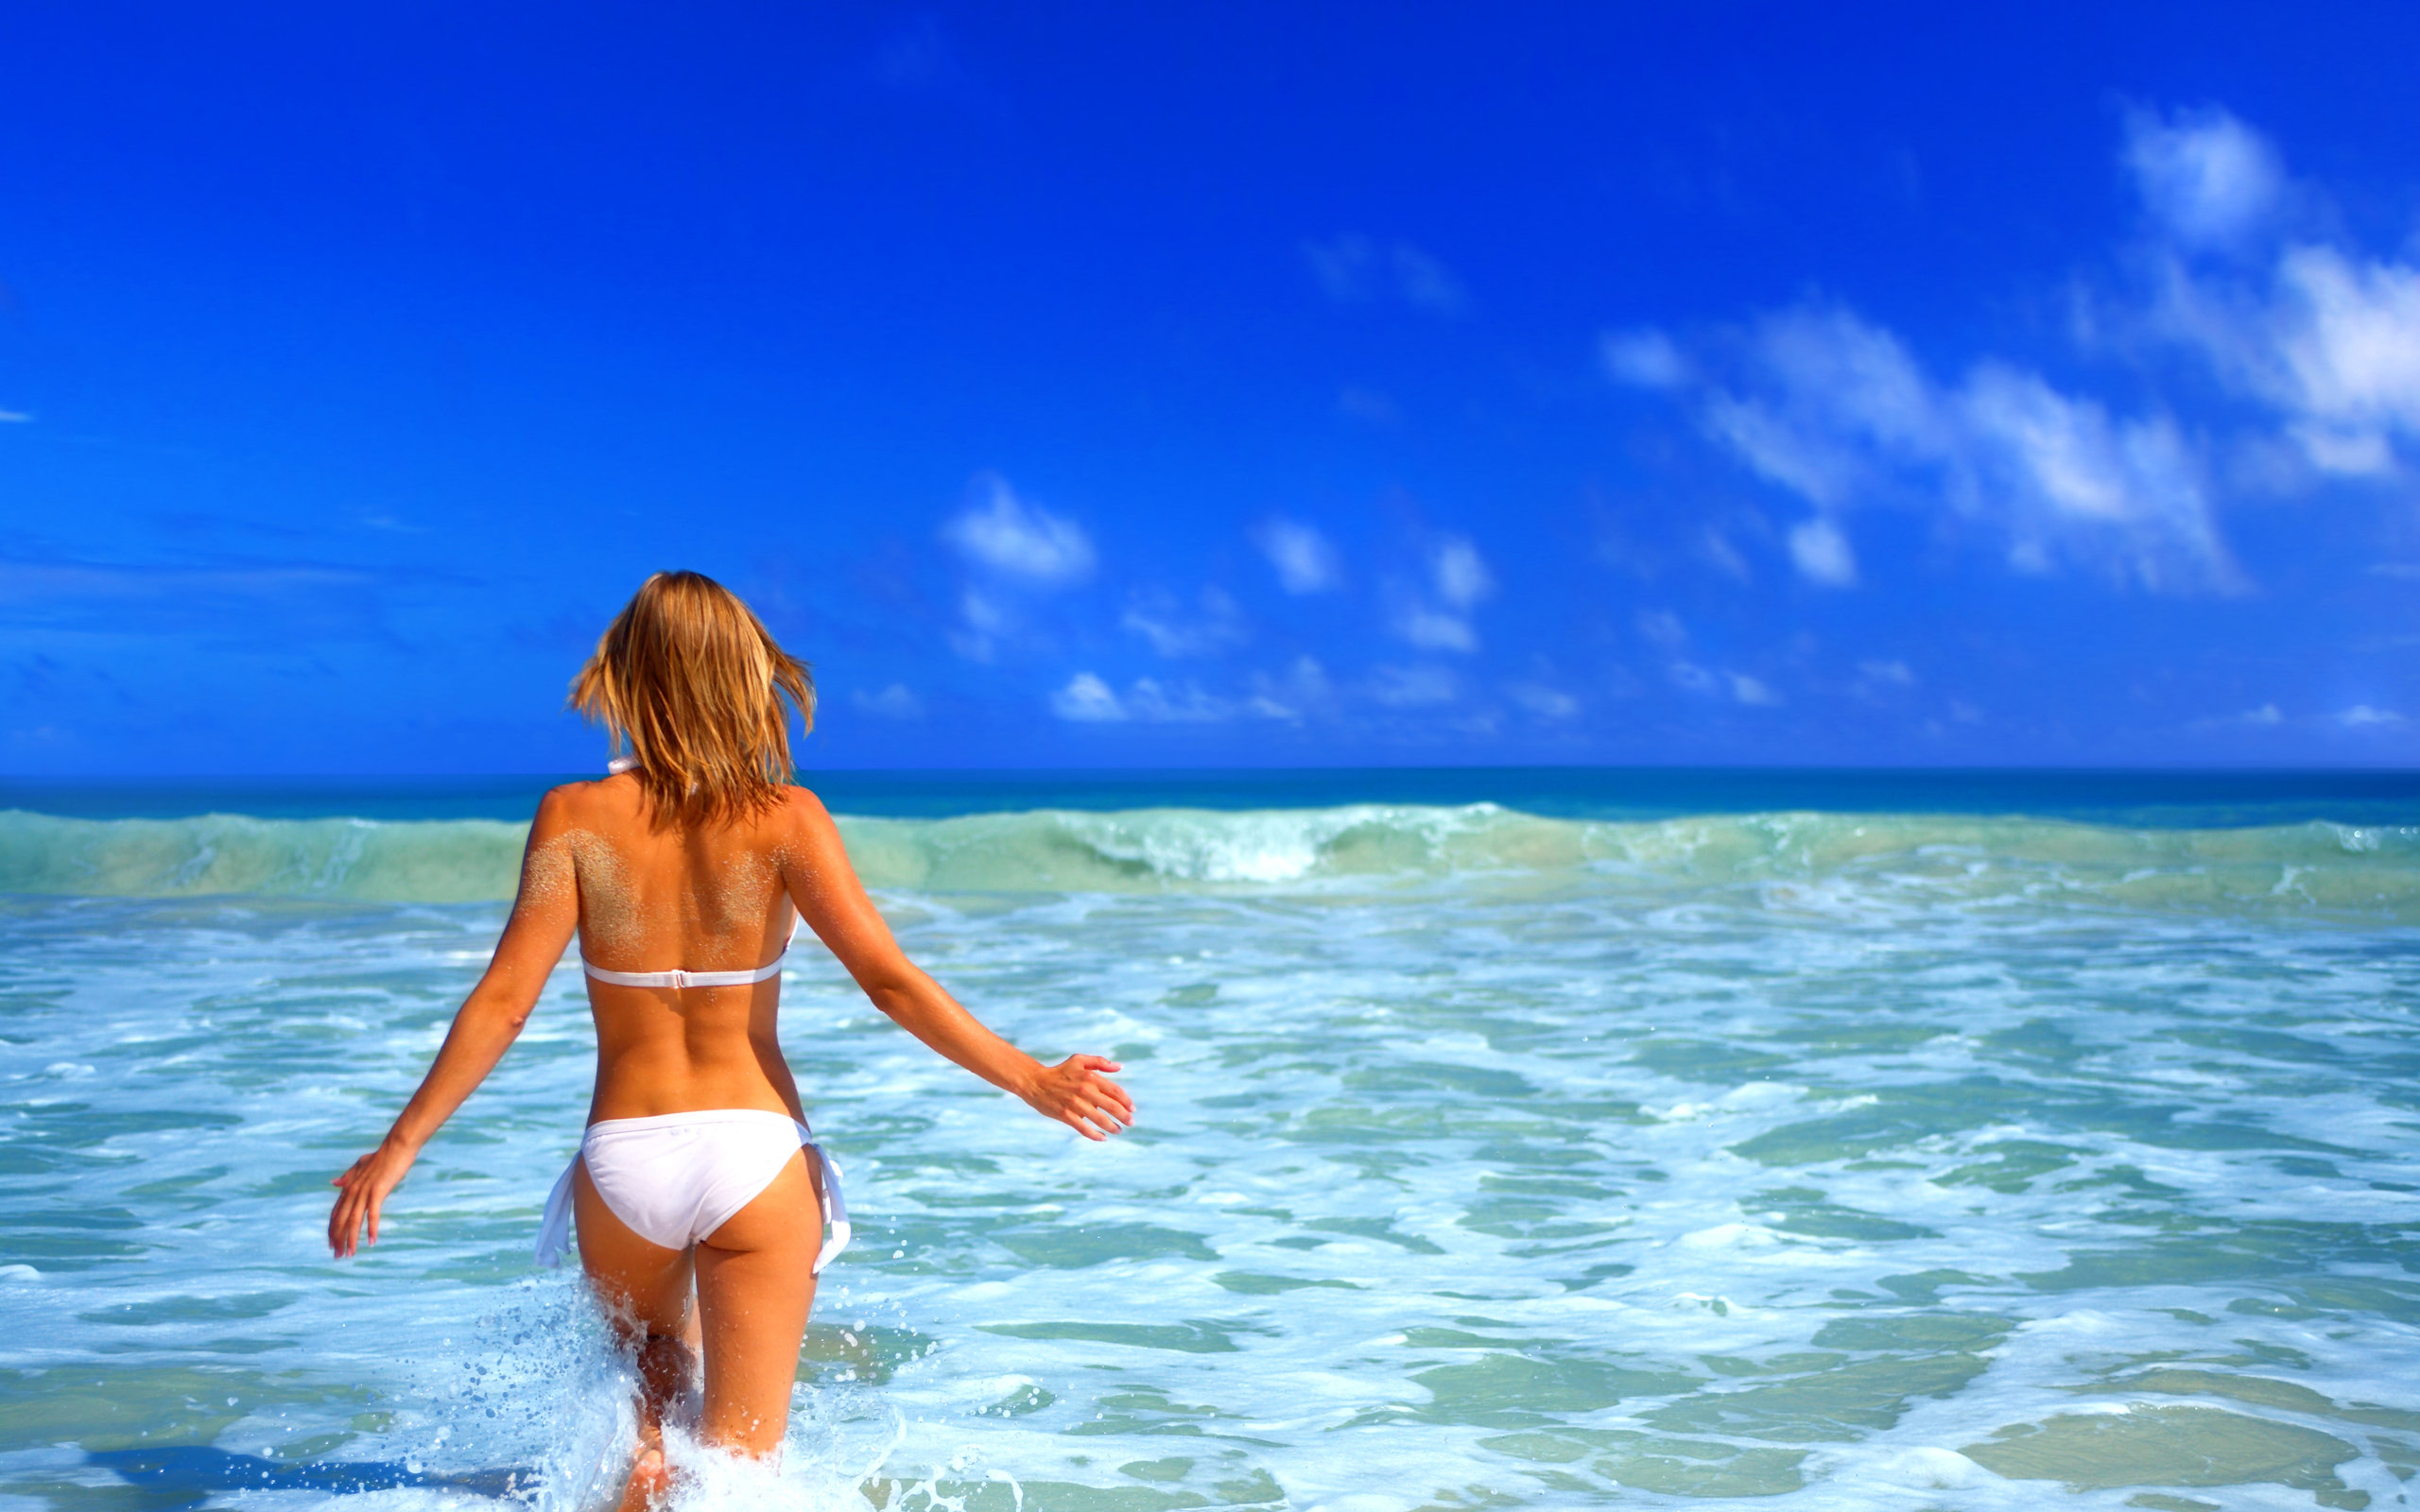 Girl-in-white-swimsuit-in-the-sea-wallpaper_3599